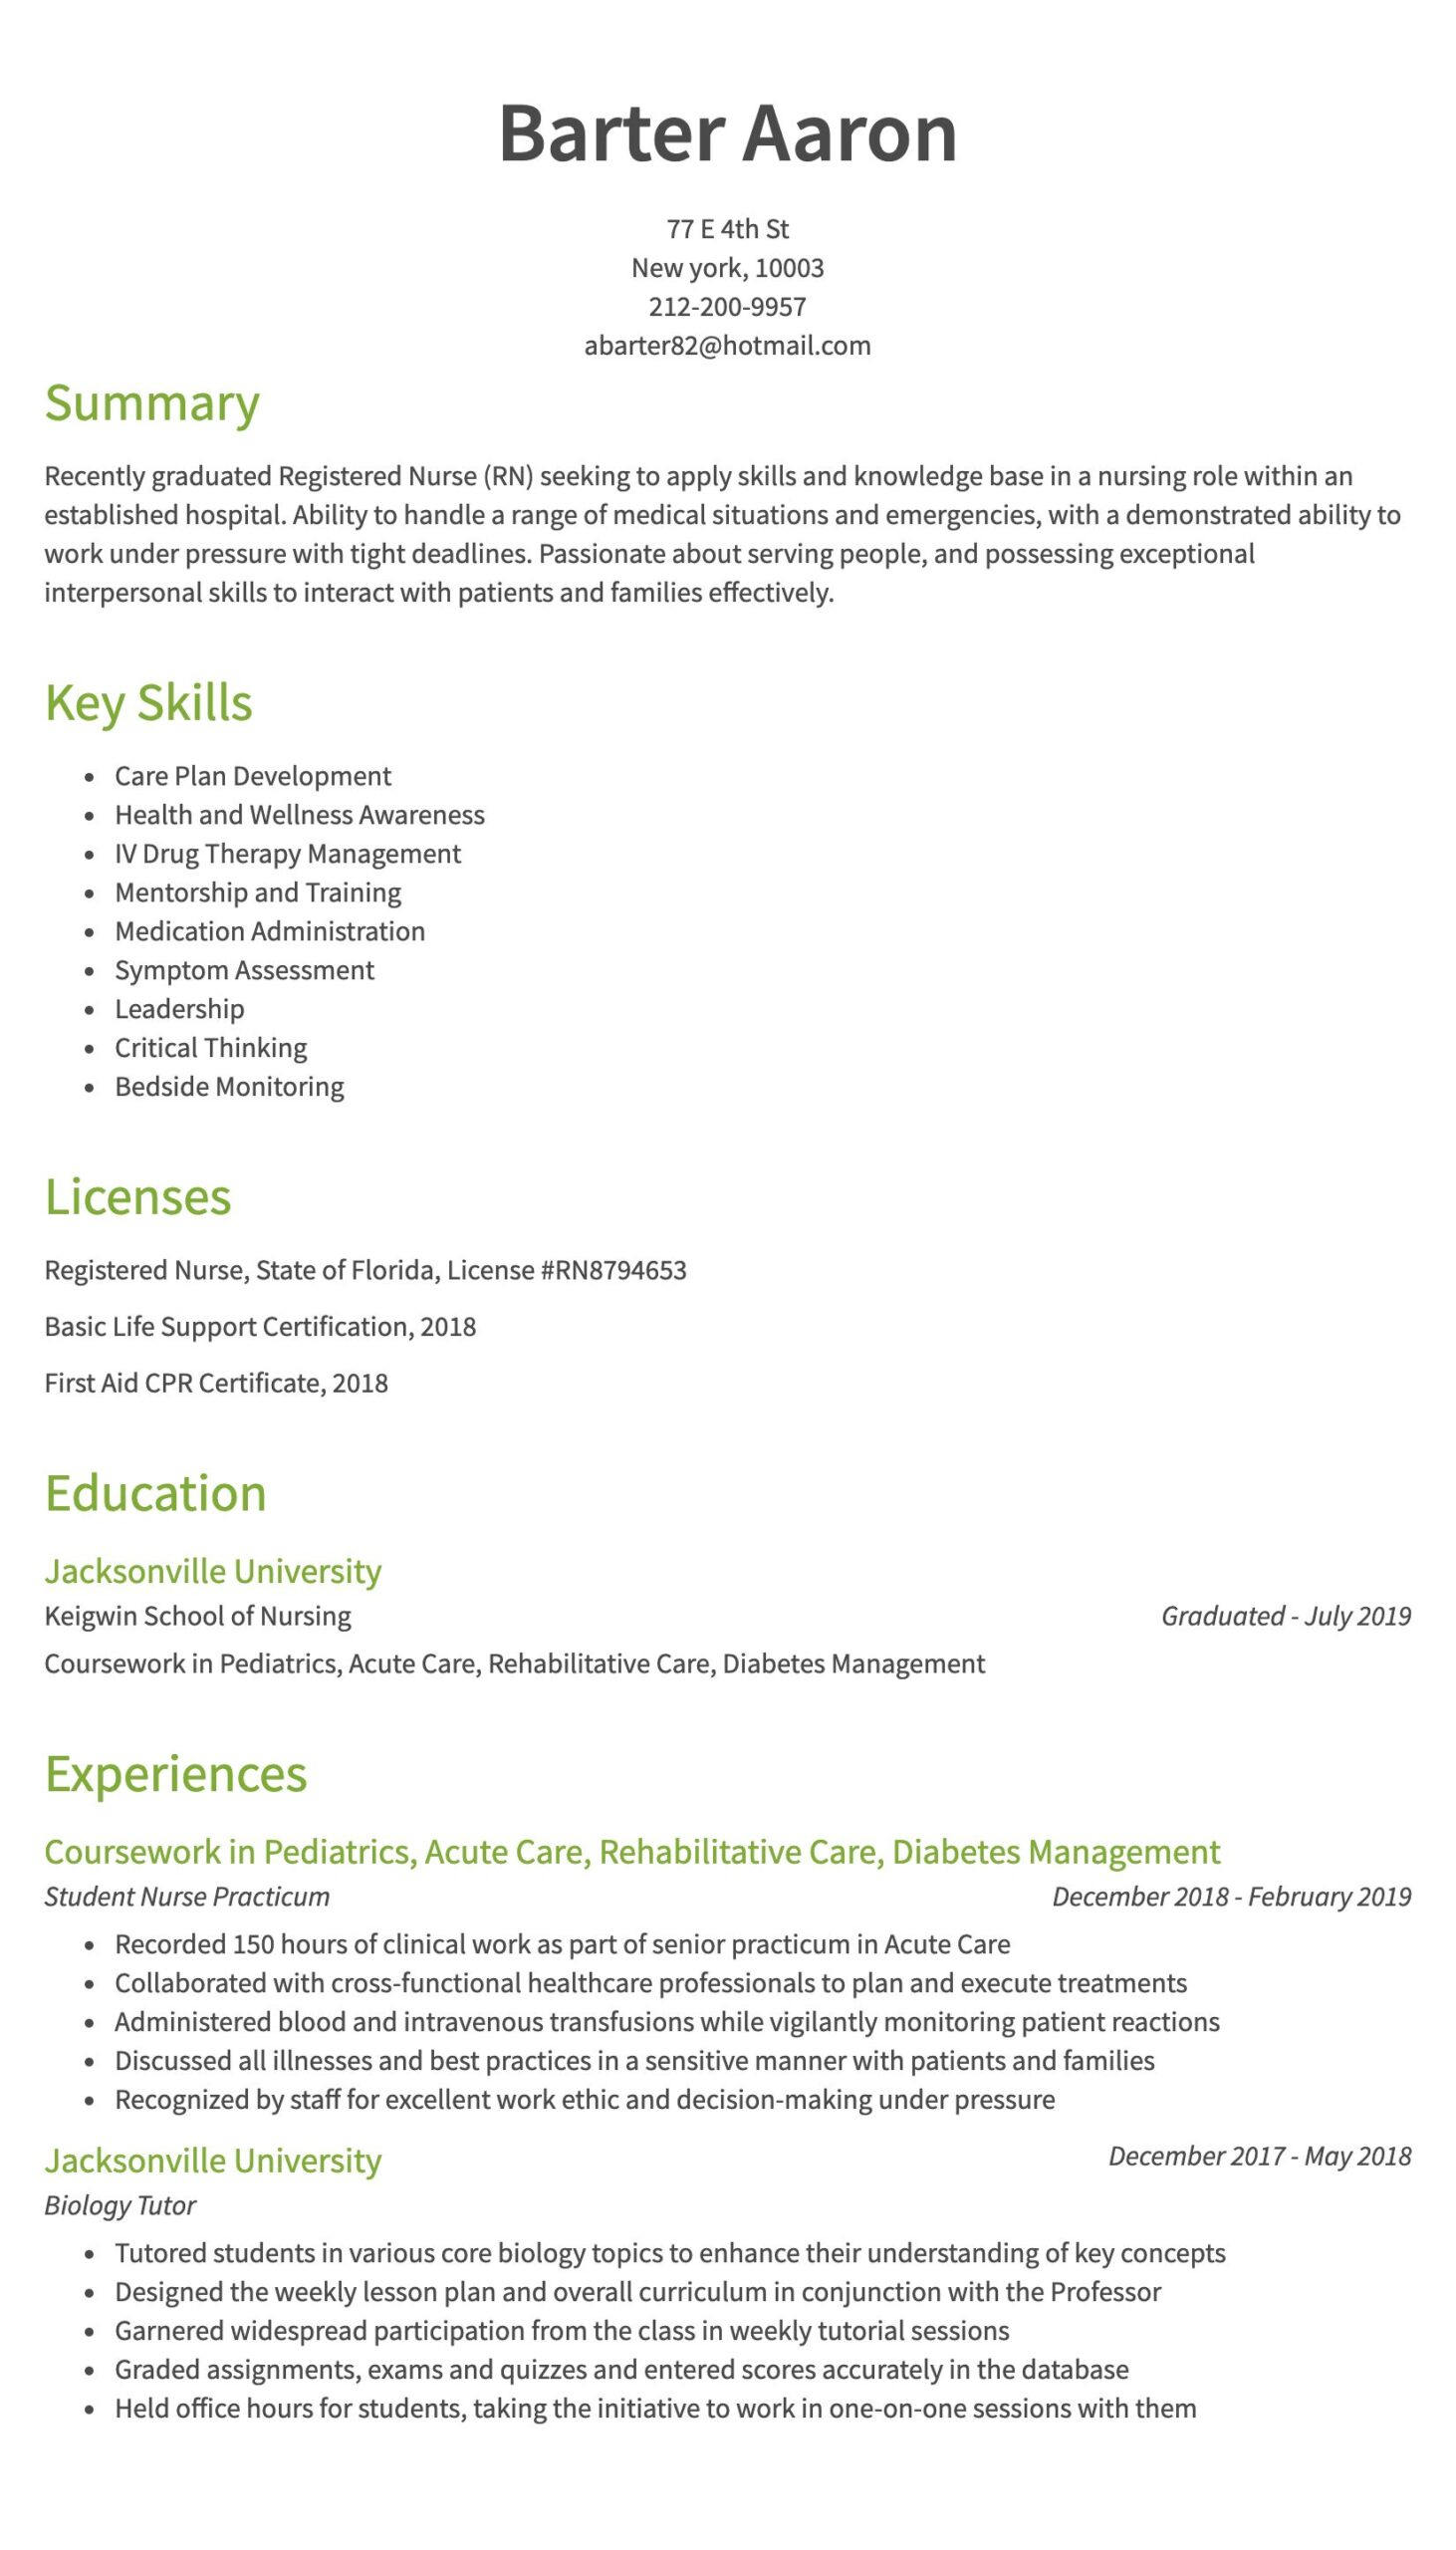 nursing resume examples samples written by rn managers new nurse template years of exp Resume New Nurse Resume Template